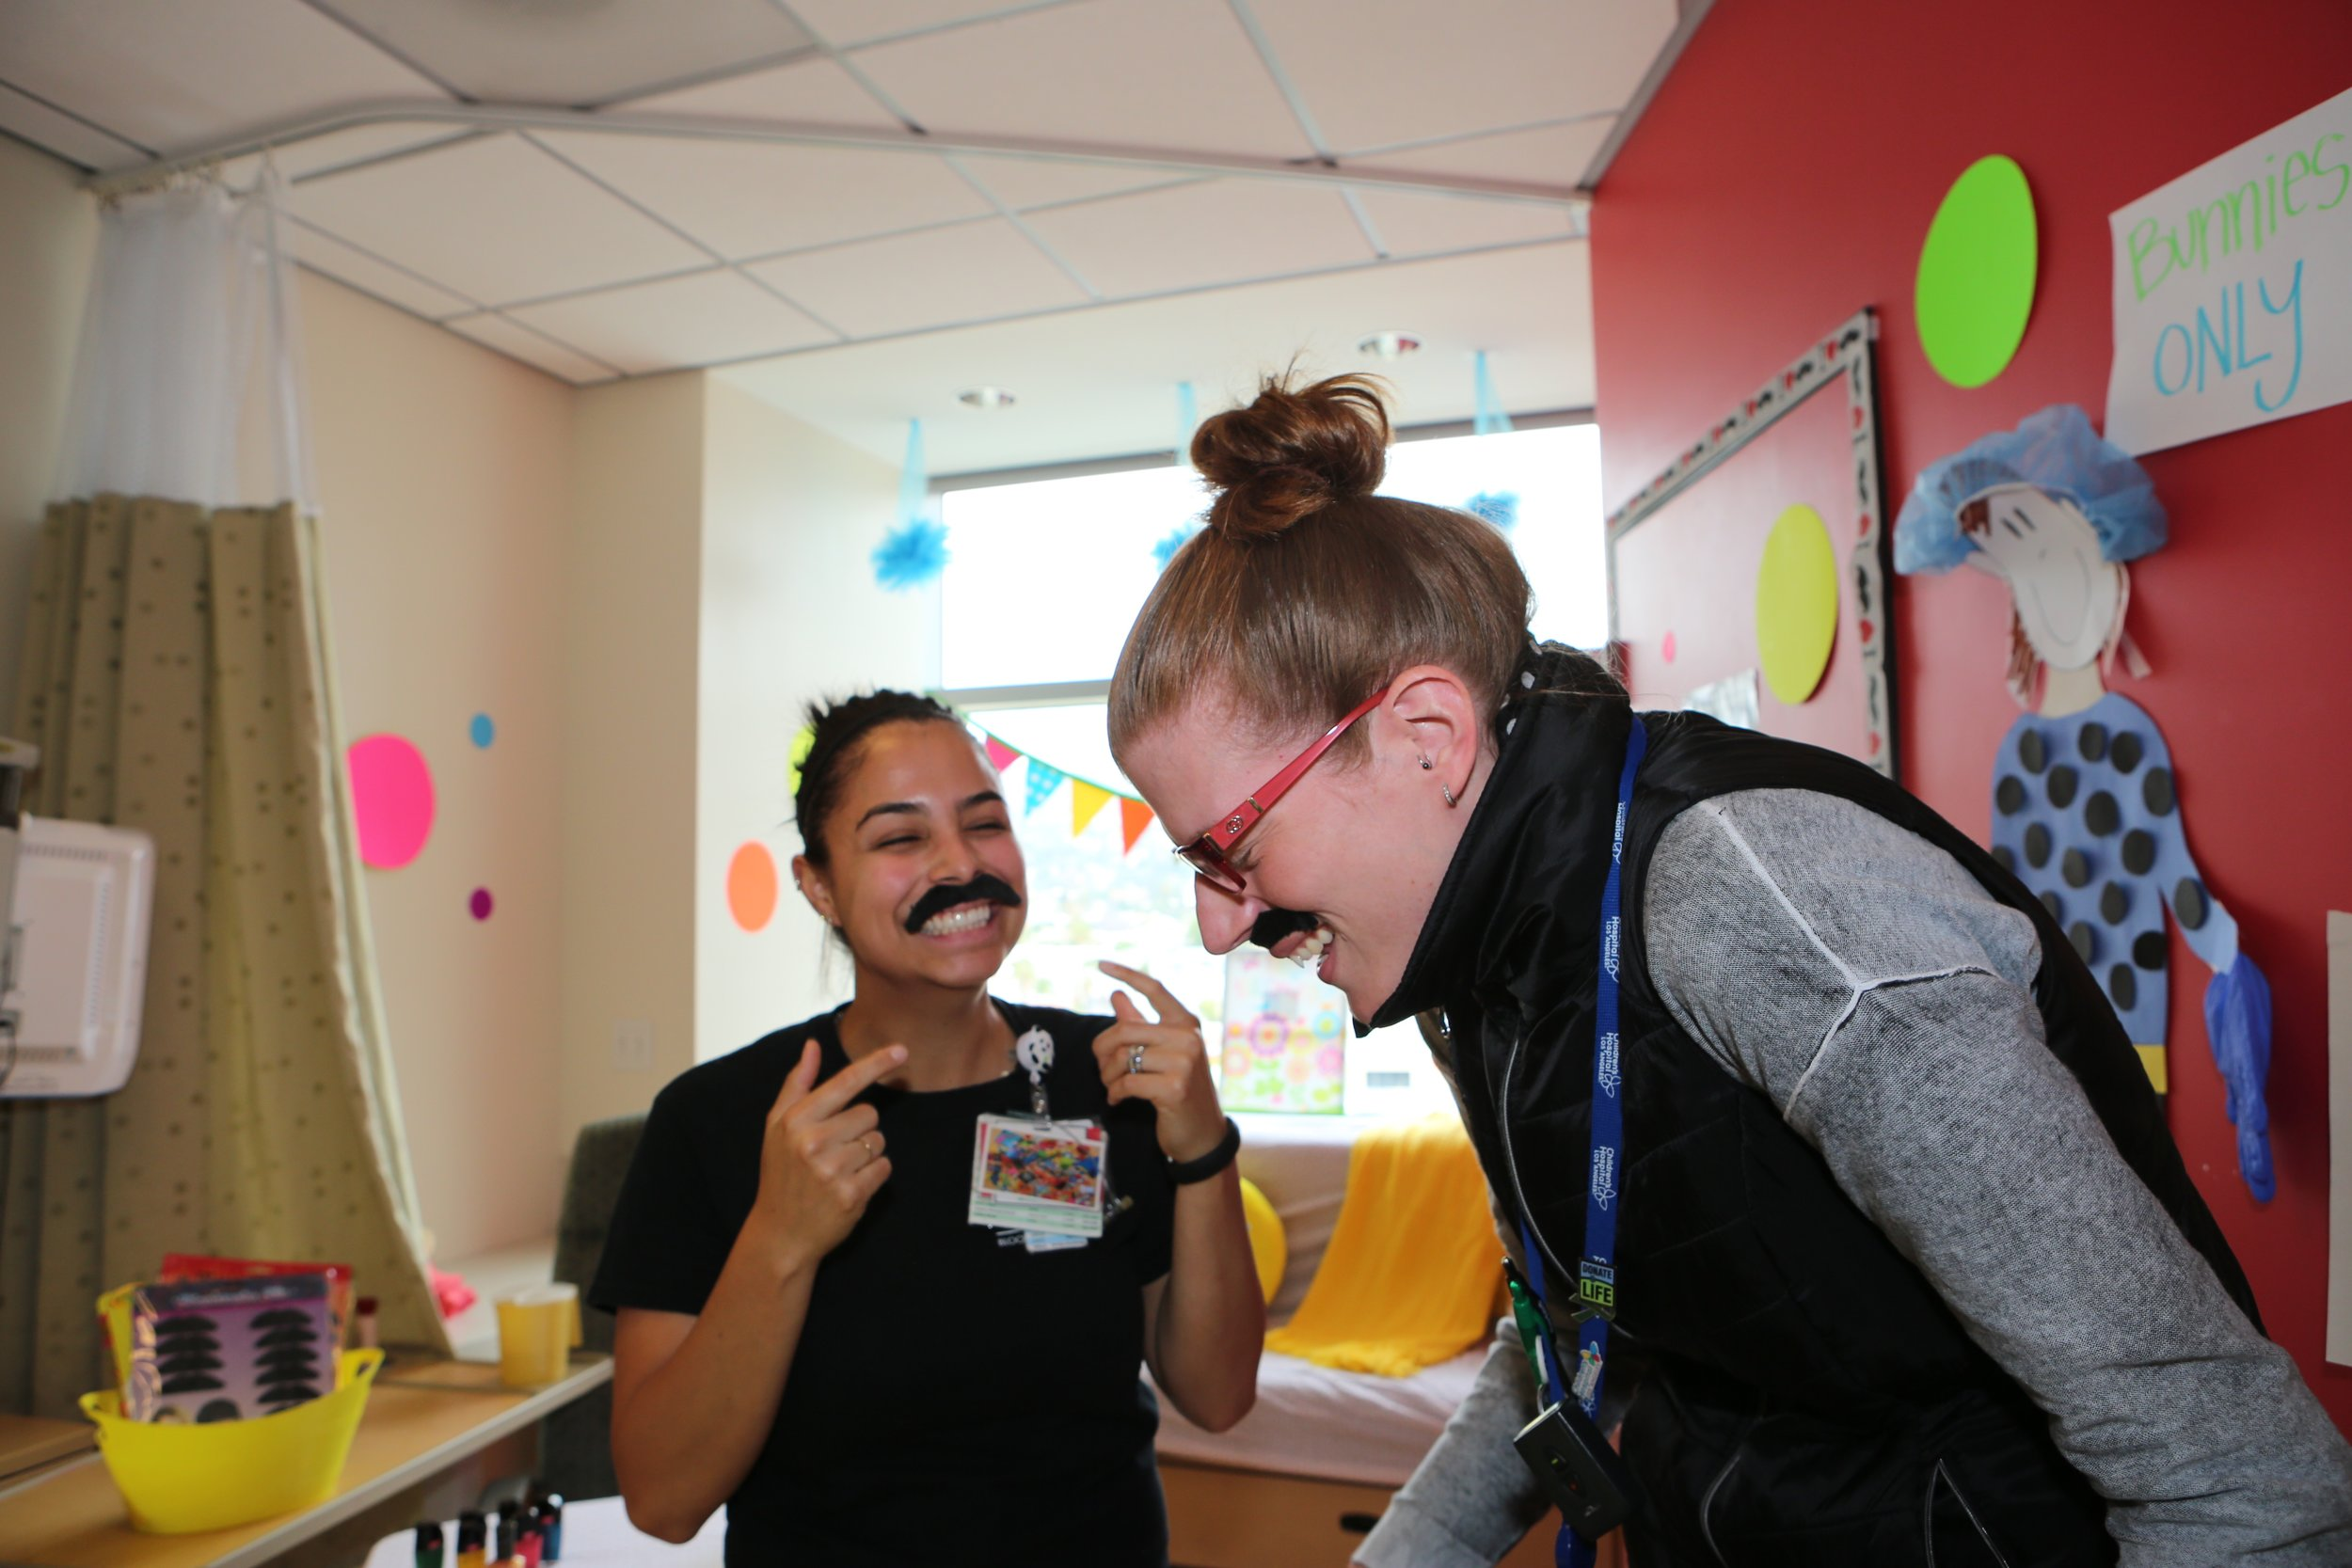 mustaches staff laughing.jpg